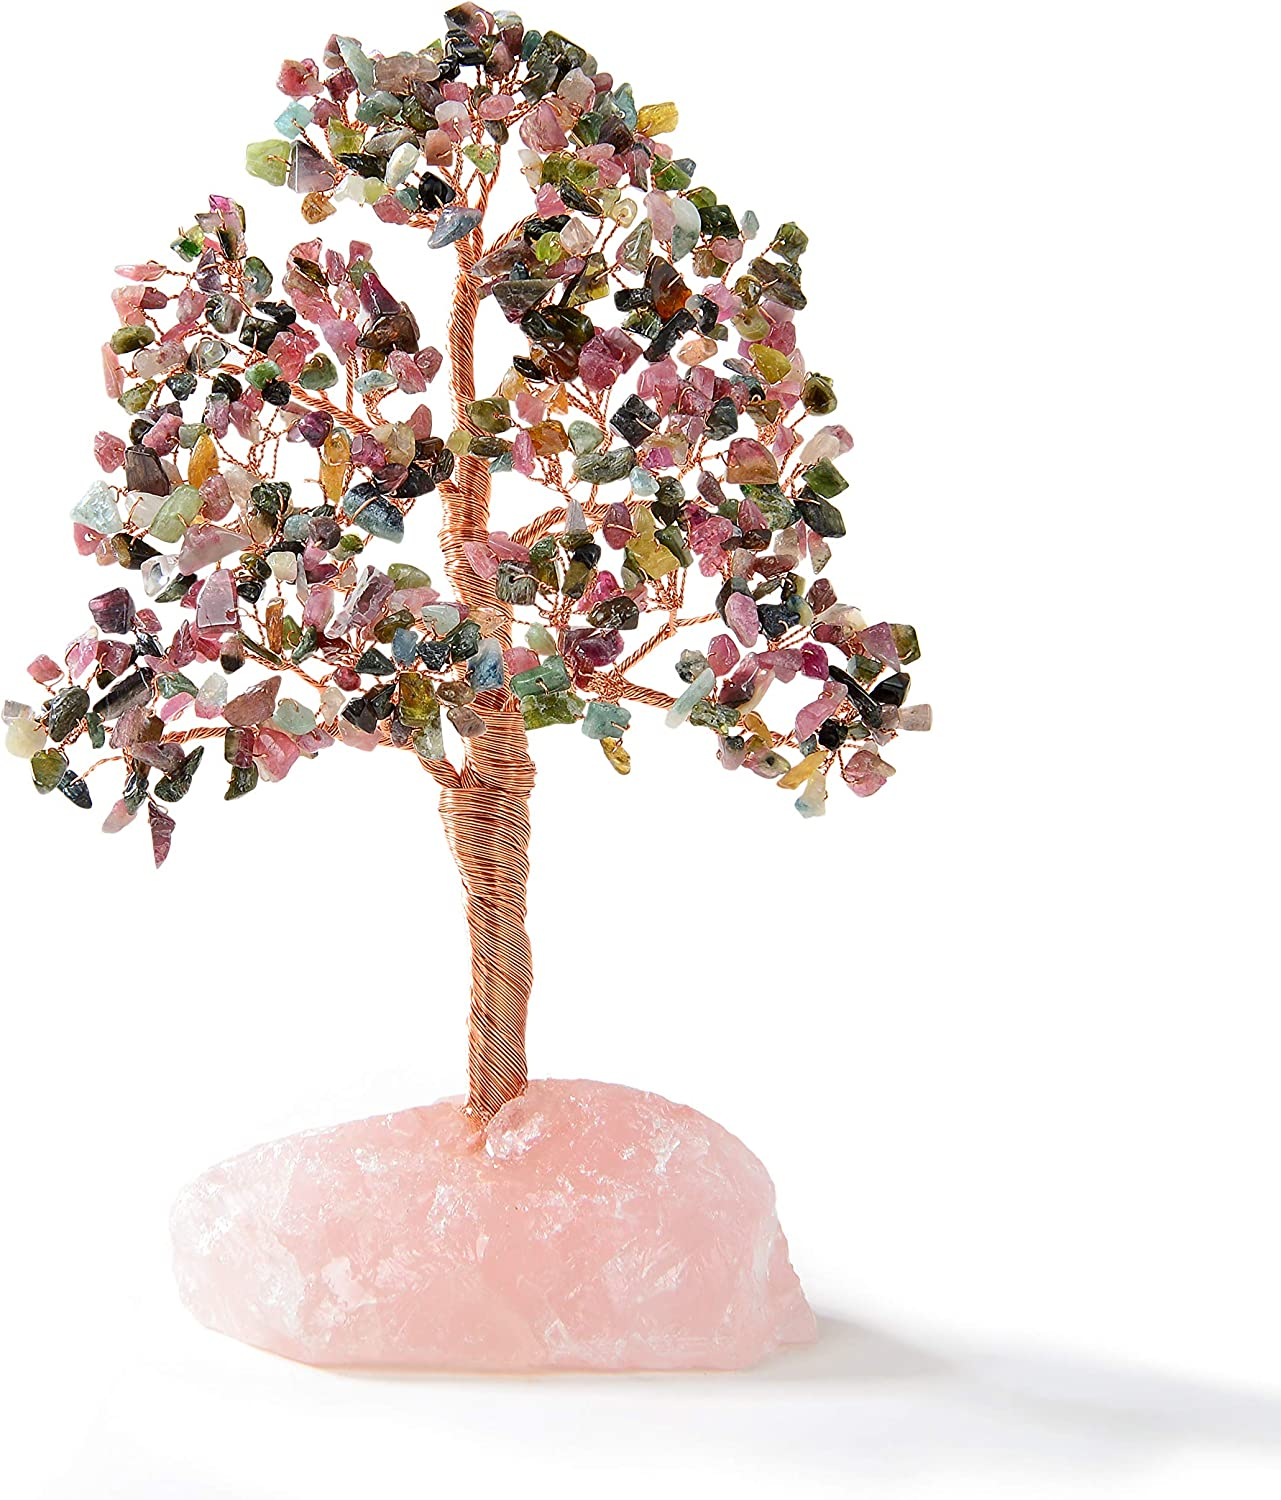 KALIFANO Premium Natural Tourmaline (414 Gemstone Count) Chakra Crystal Tree with Rose Quartz Base with Healing Properties- Bonsai Feng Shui Money Tree for Relaxation and Stability